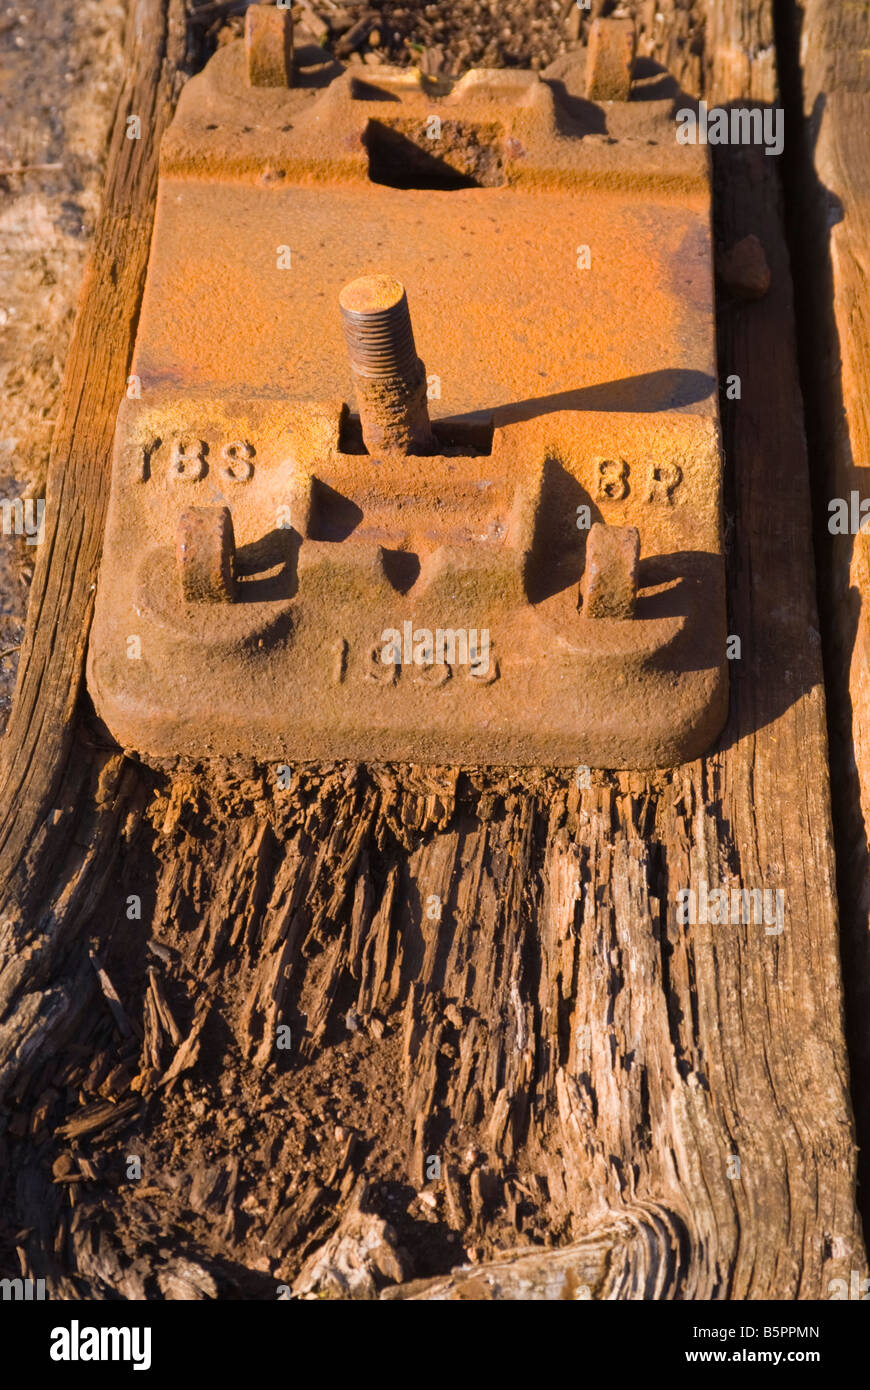 Close up of metal fixing block on british rail train track sleeper - Stock Image